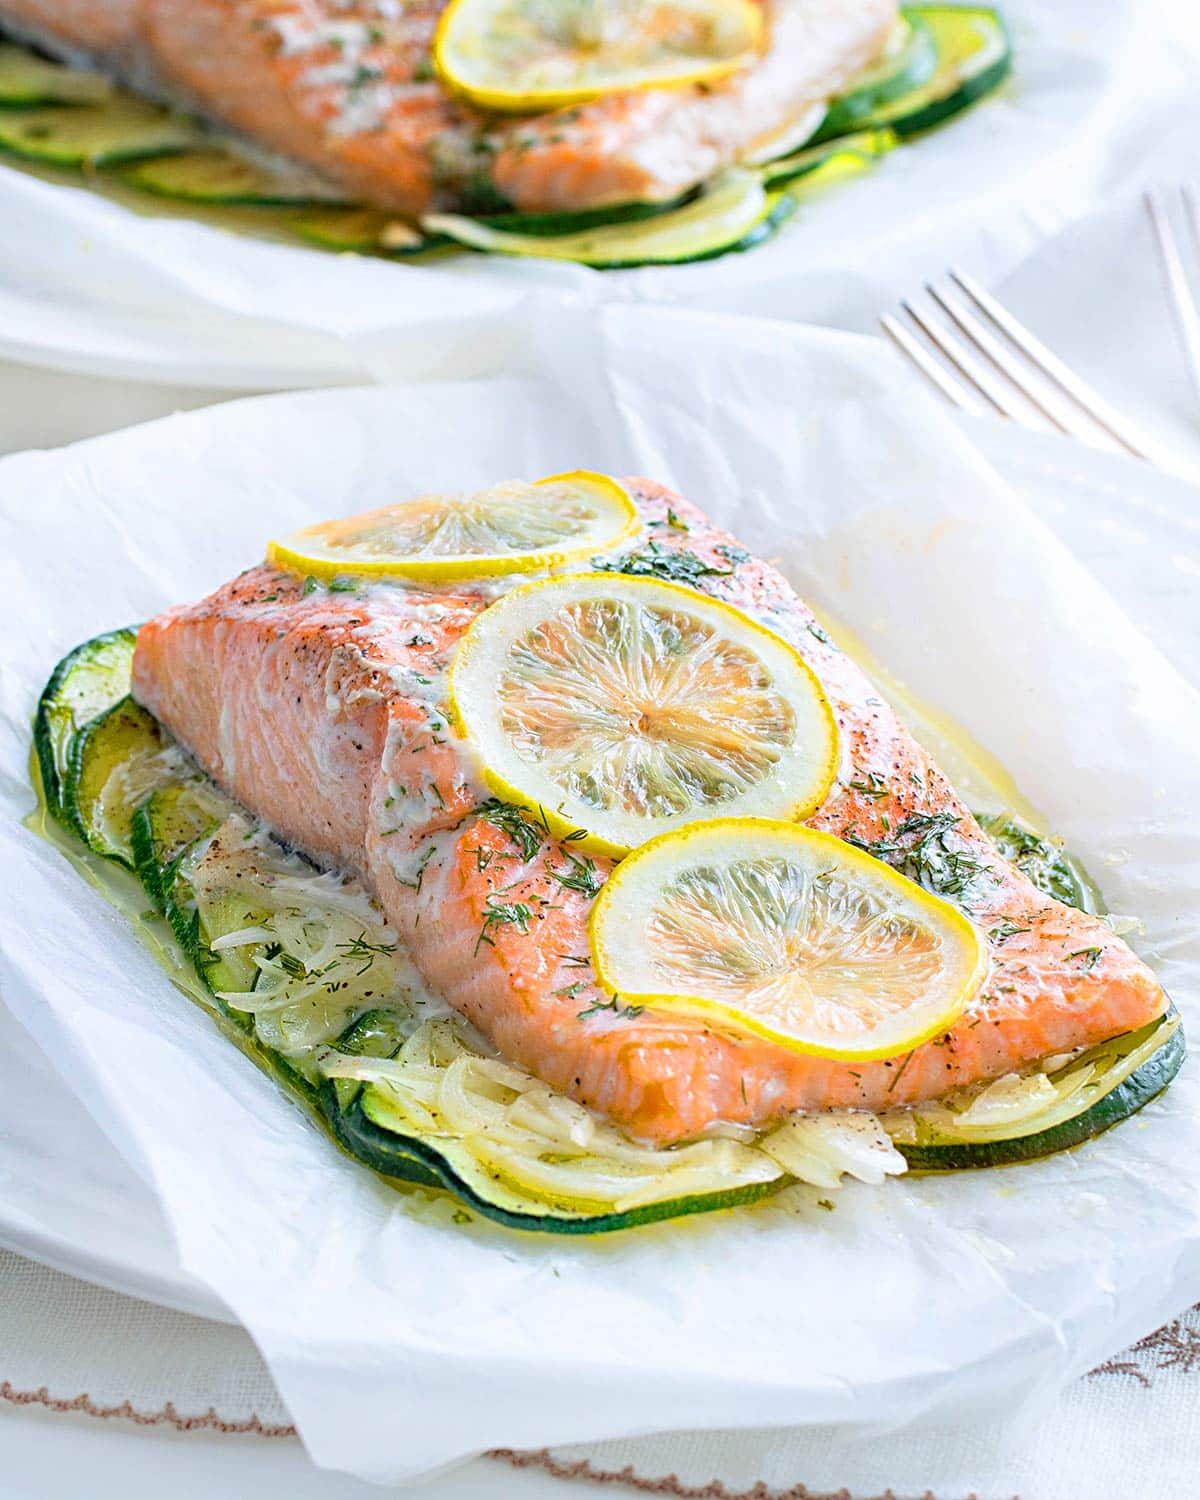 baked salmon fillet with veggies on a plate.